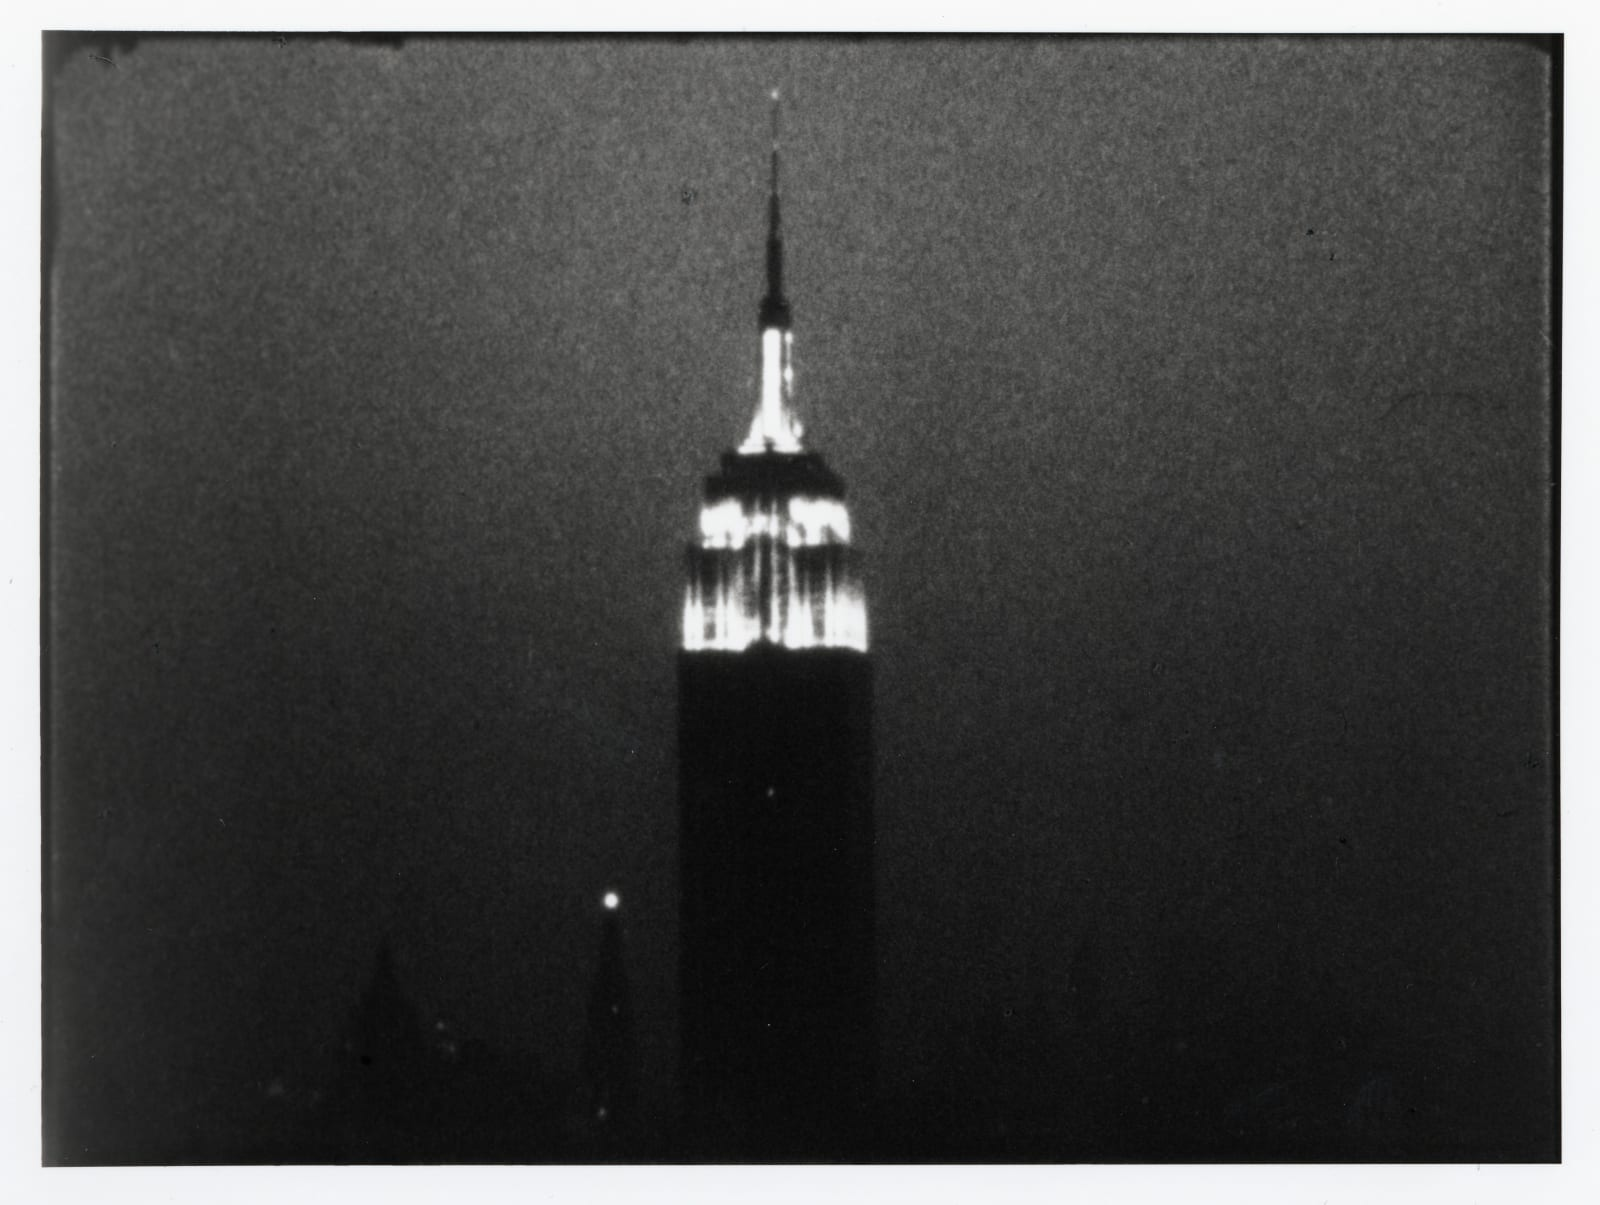 Empire, 1964 by Andy Warhol, Black and White/Indie Film, Courtesy of The Andy Warhol Museum, Pittsburgh, at Coskun Fine Art